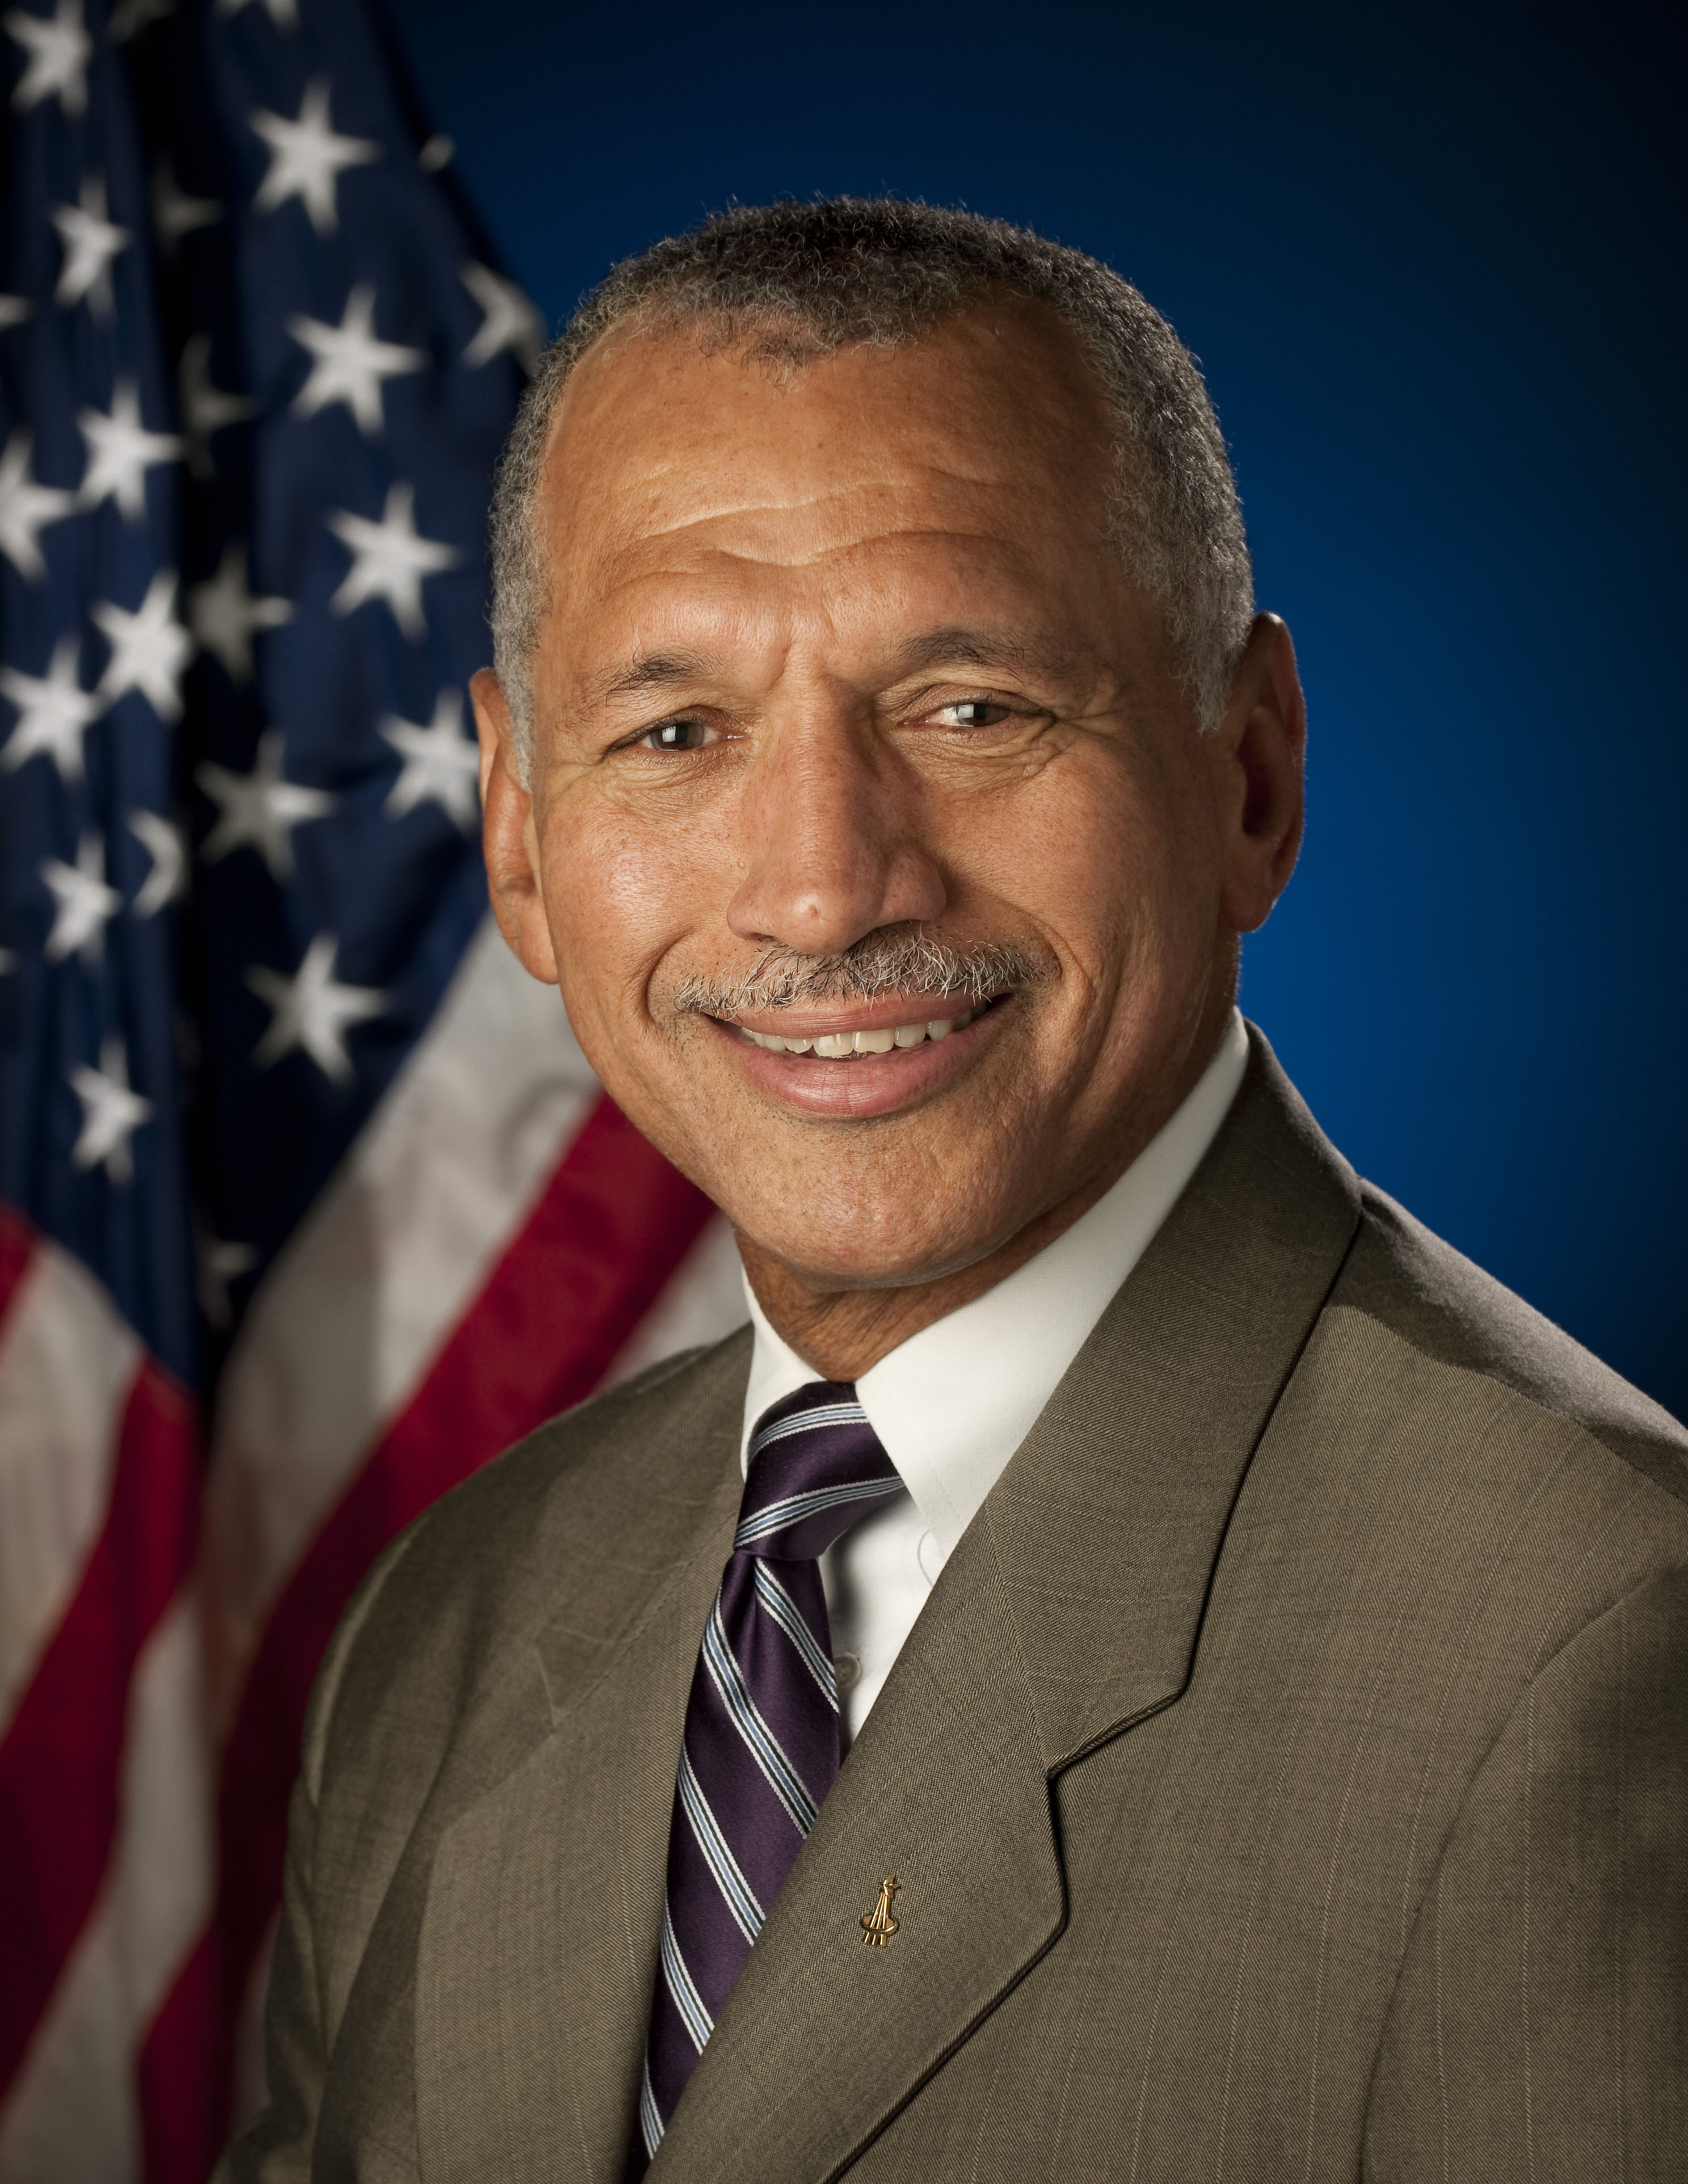 Maj. Gen. Charles Bolden, Jr. Photo Credit: NASA/Bill Ingalls.